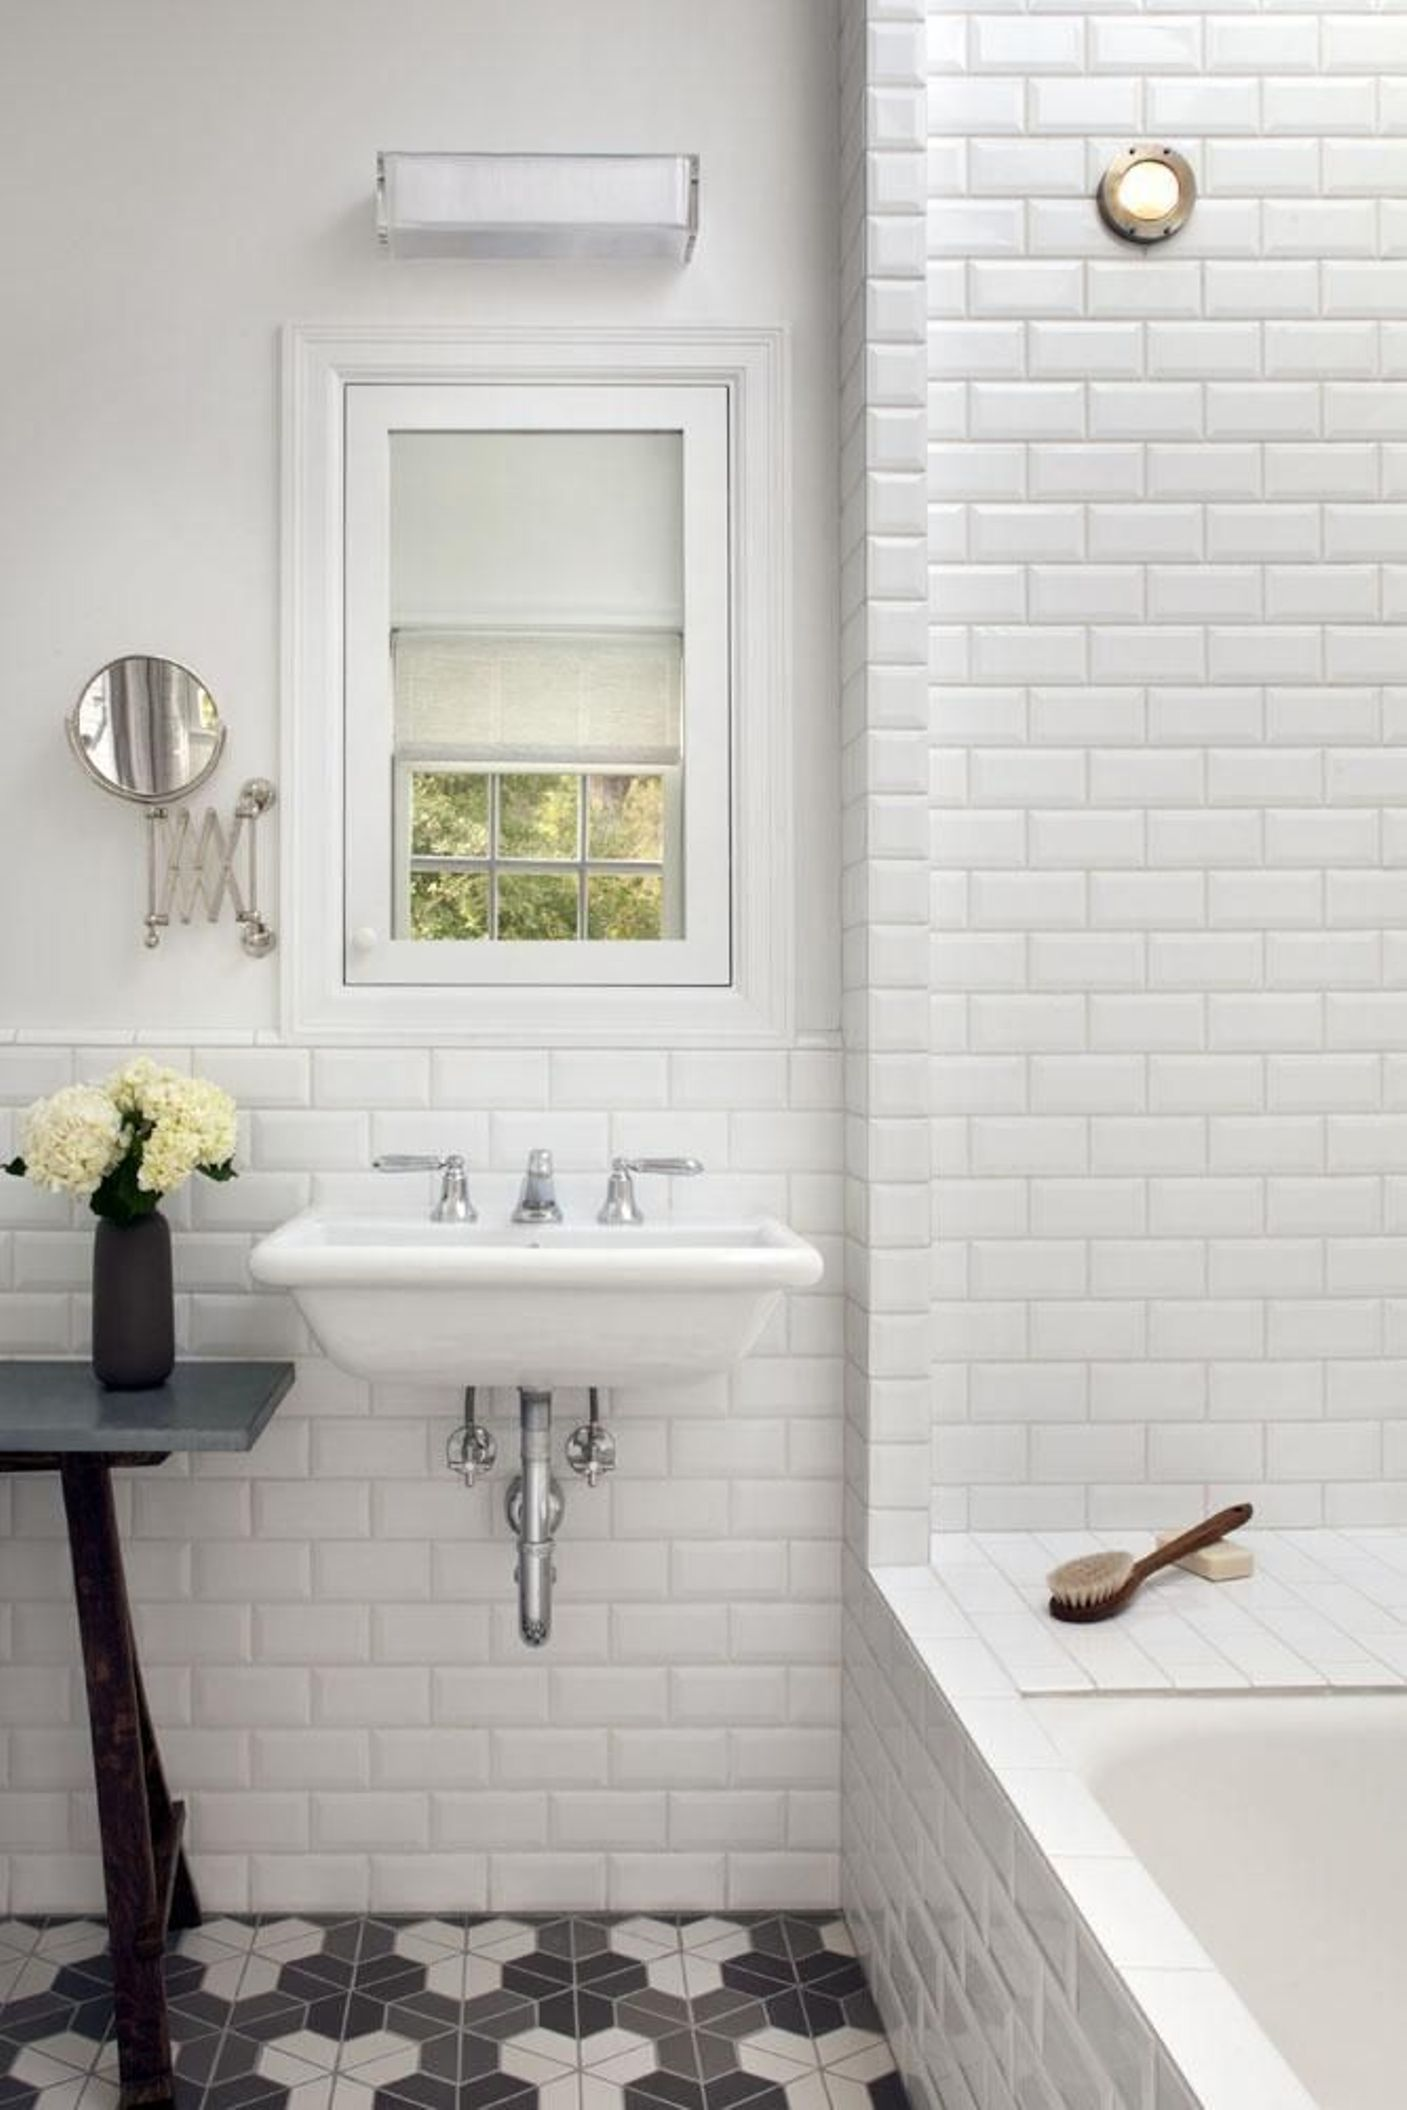 Pin By Sarah Rasul On House Bathroom White Beveled Subway Tile Beveled Subway Tile Bathroom Design